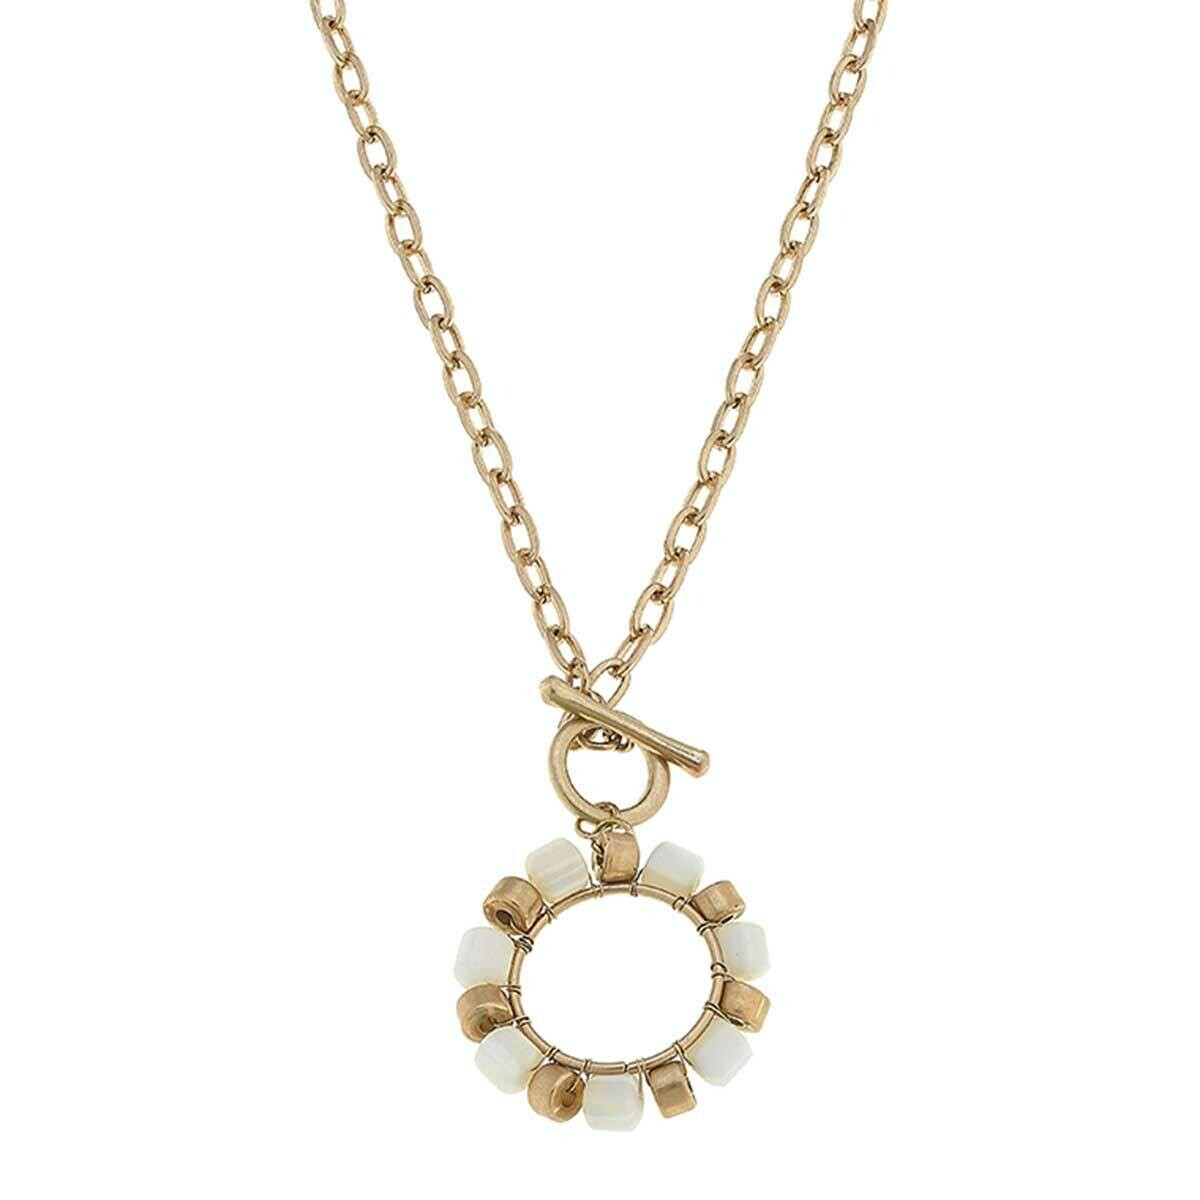 Beaded T-Bar Necklace in Ivory